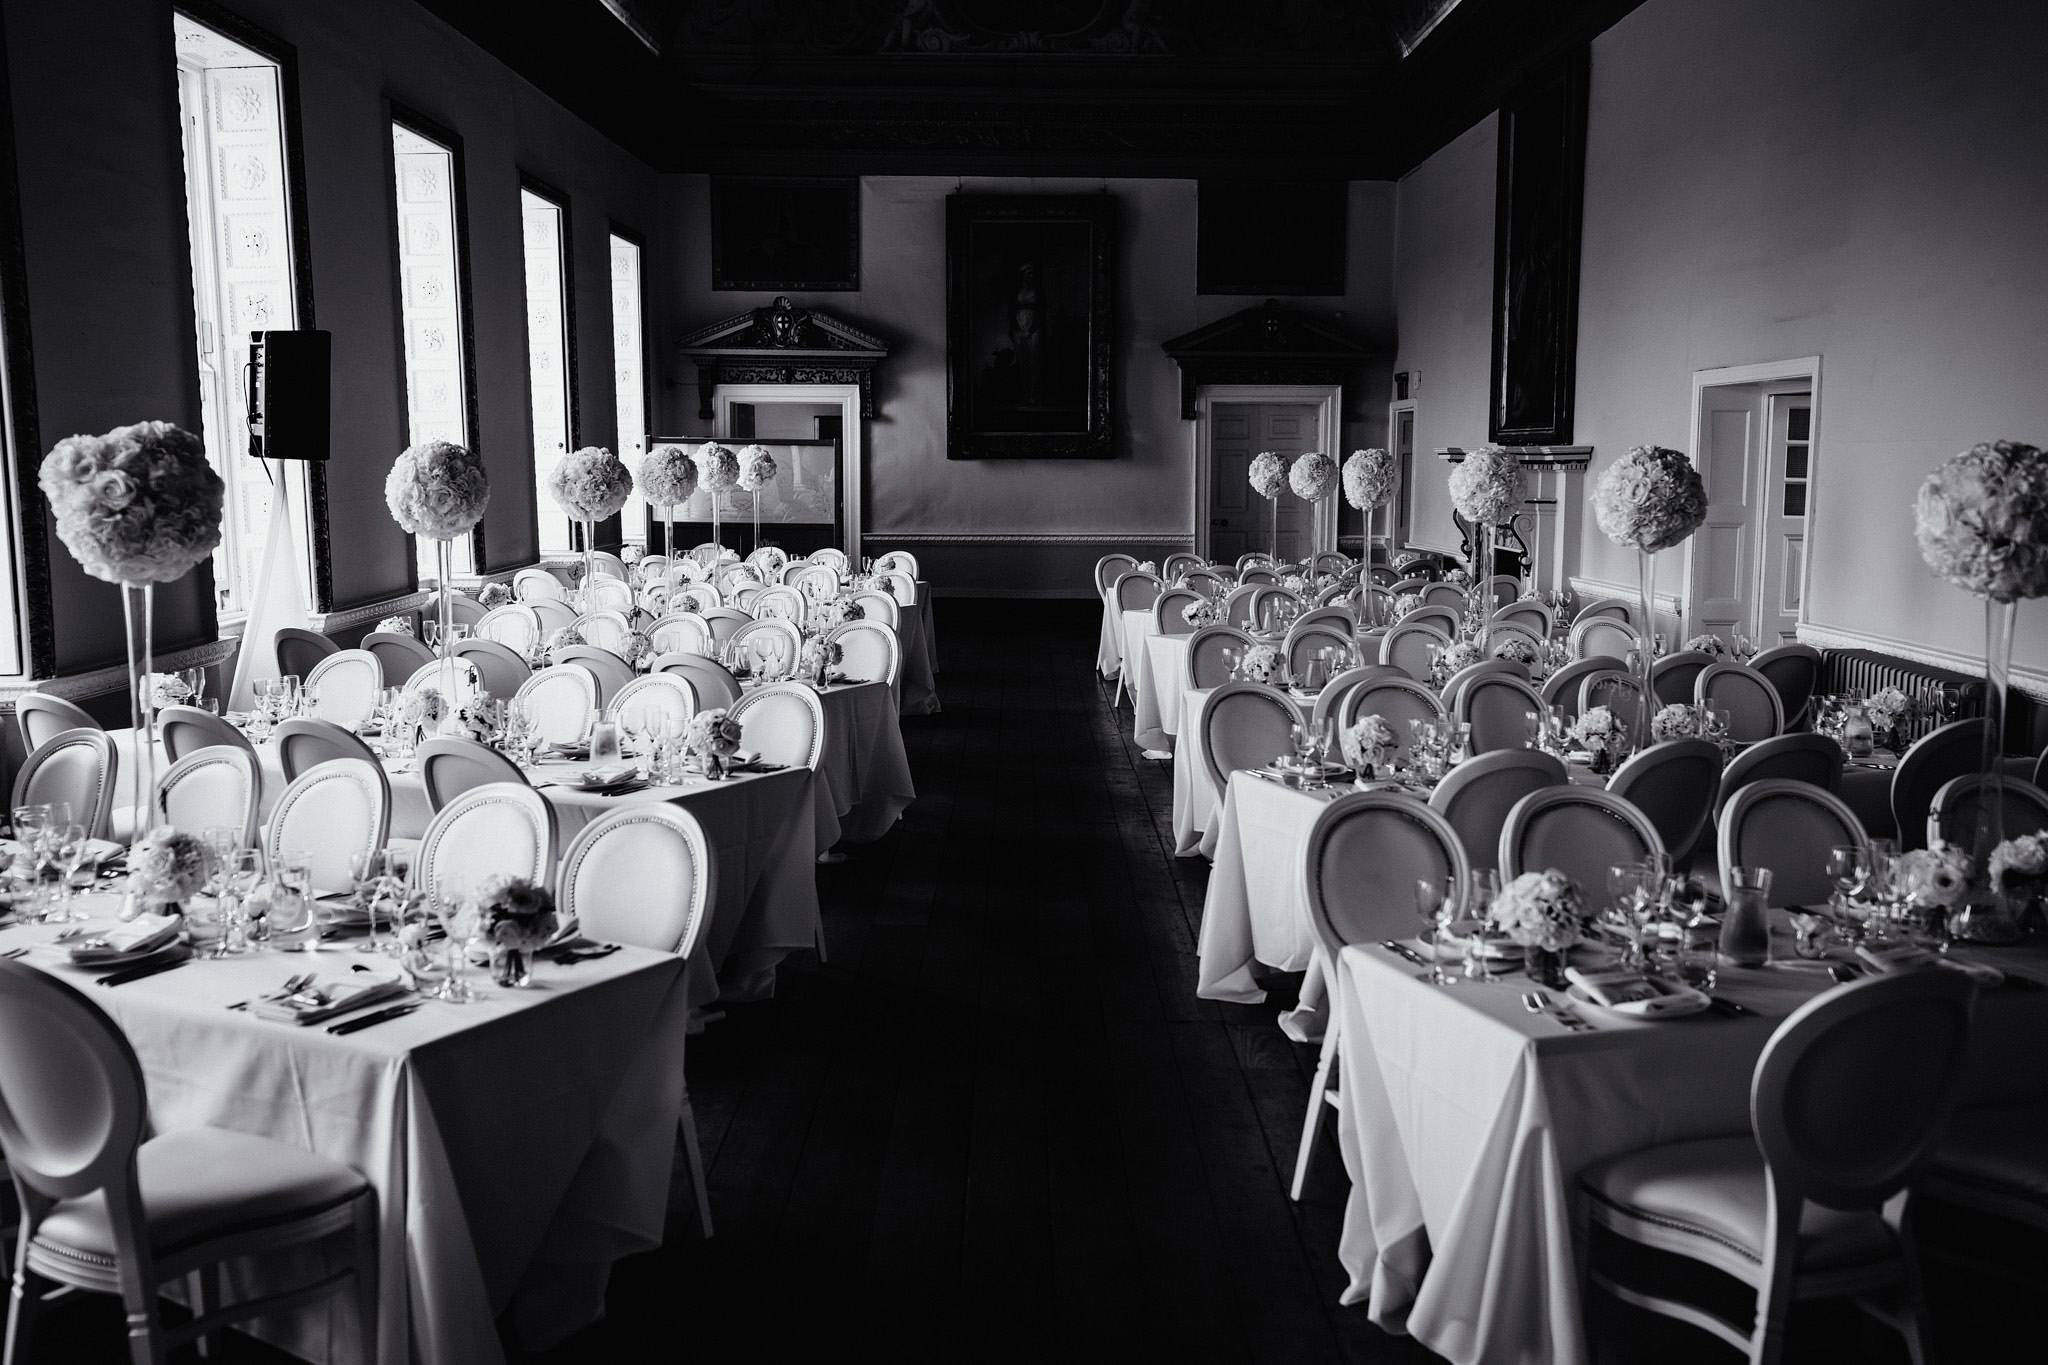 the wedding breakfast room at Stowe House